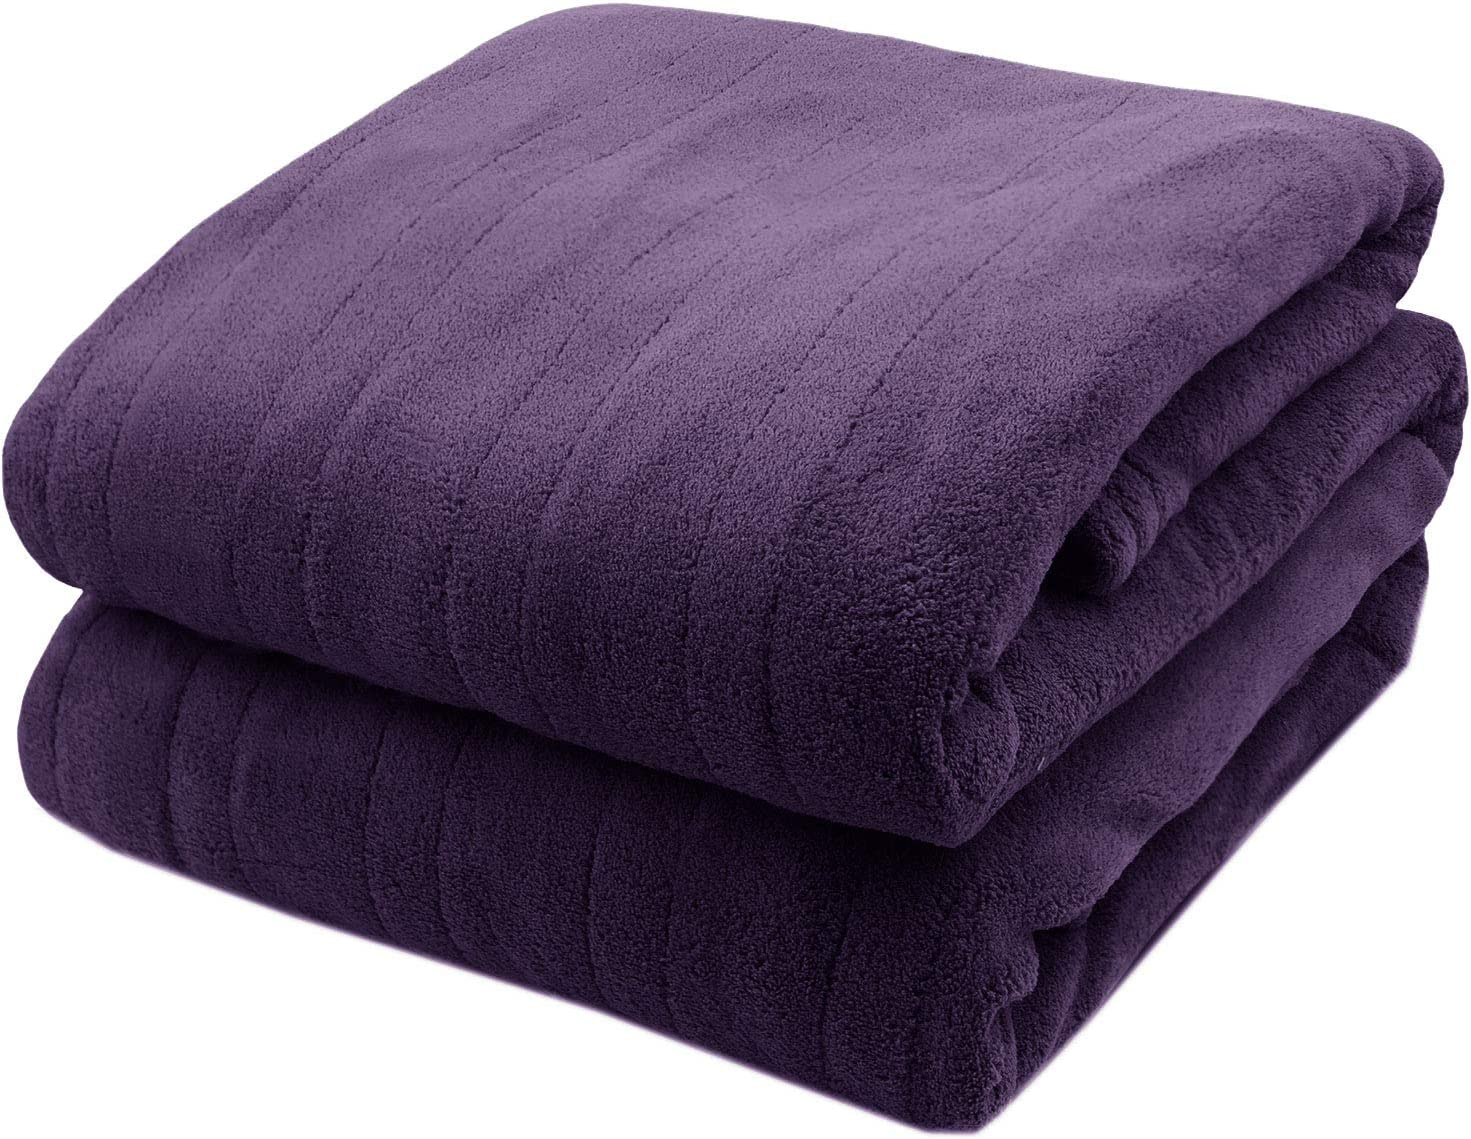 Biddeford Microplush Electric Heated Warming Blanket Queen Midnight Purple Washable Auto Shut Off 10 Heat Settings